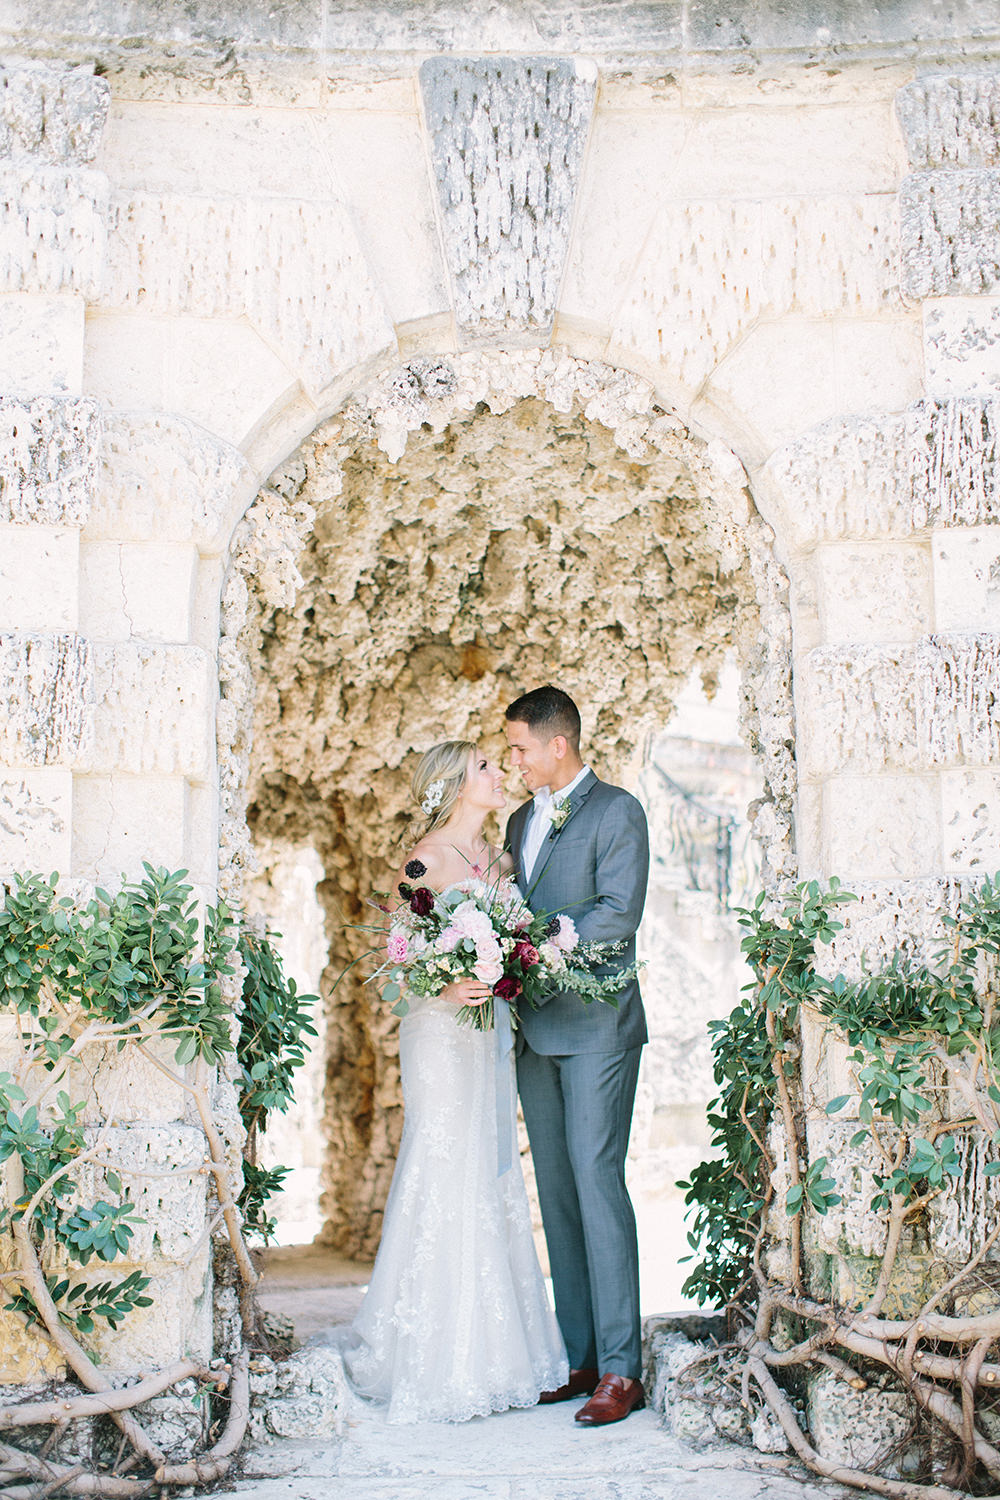 Old World Wedding Editorial at Vizcaya Museum - photo by Erica J Photography https://ruffledblog.com/old-world-wedding-editorial-at-vizcaya-museum